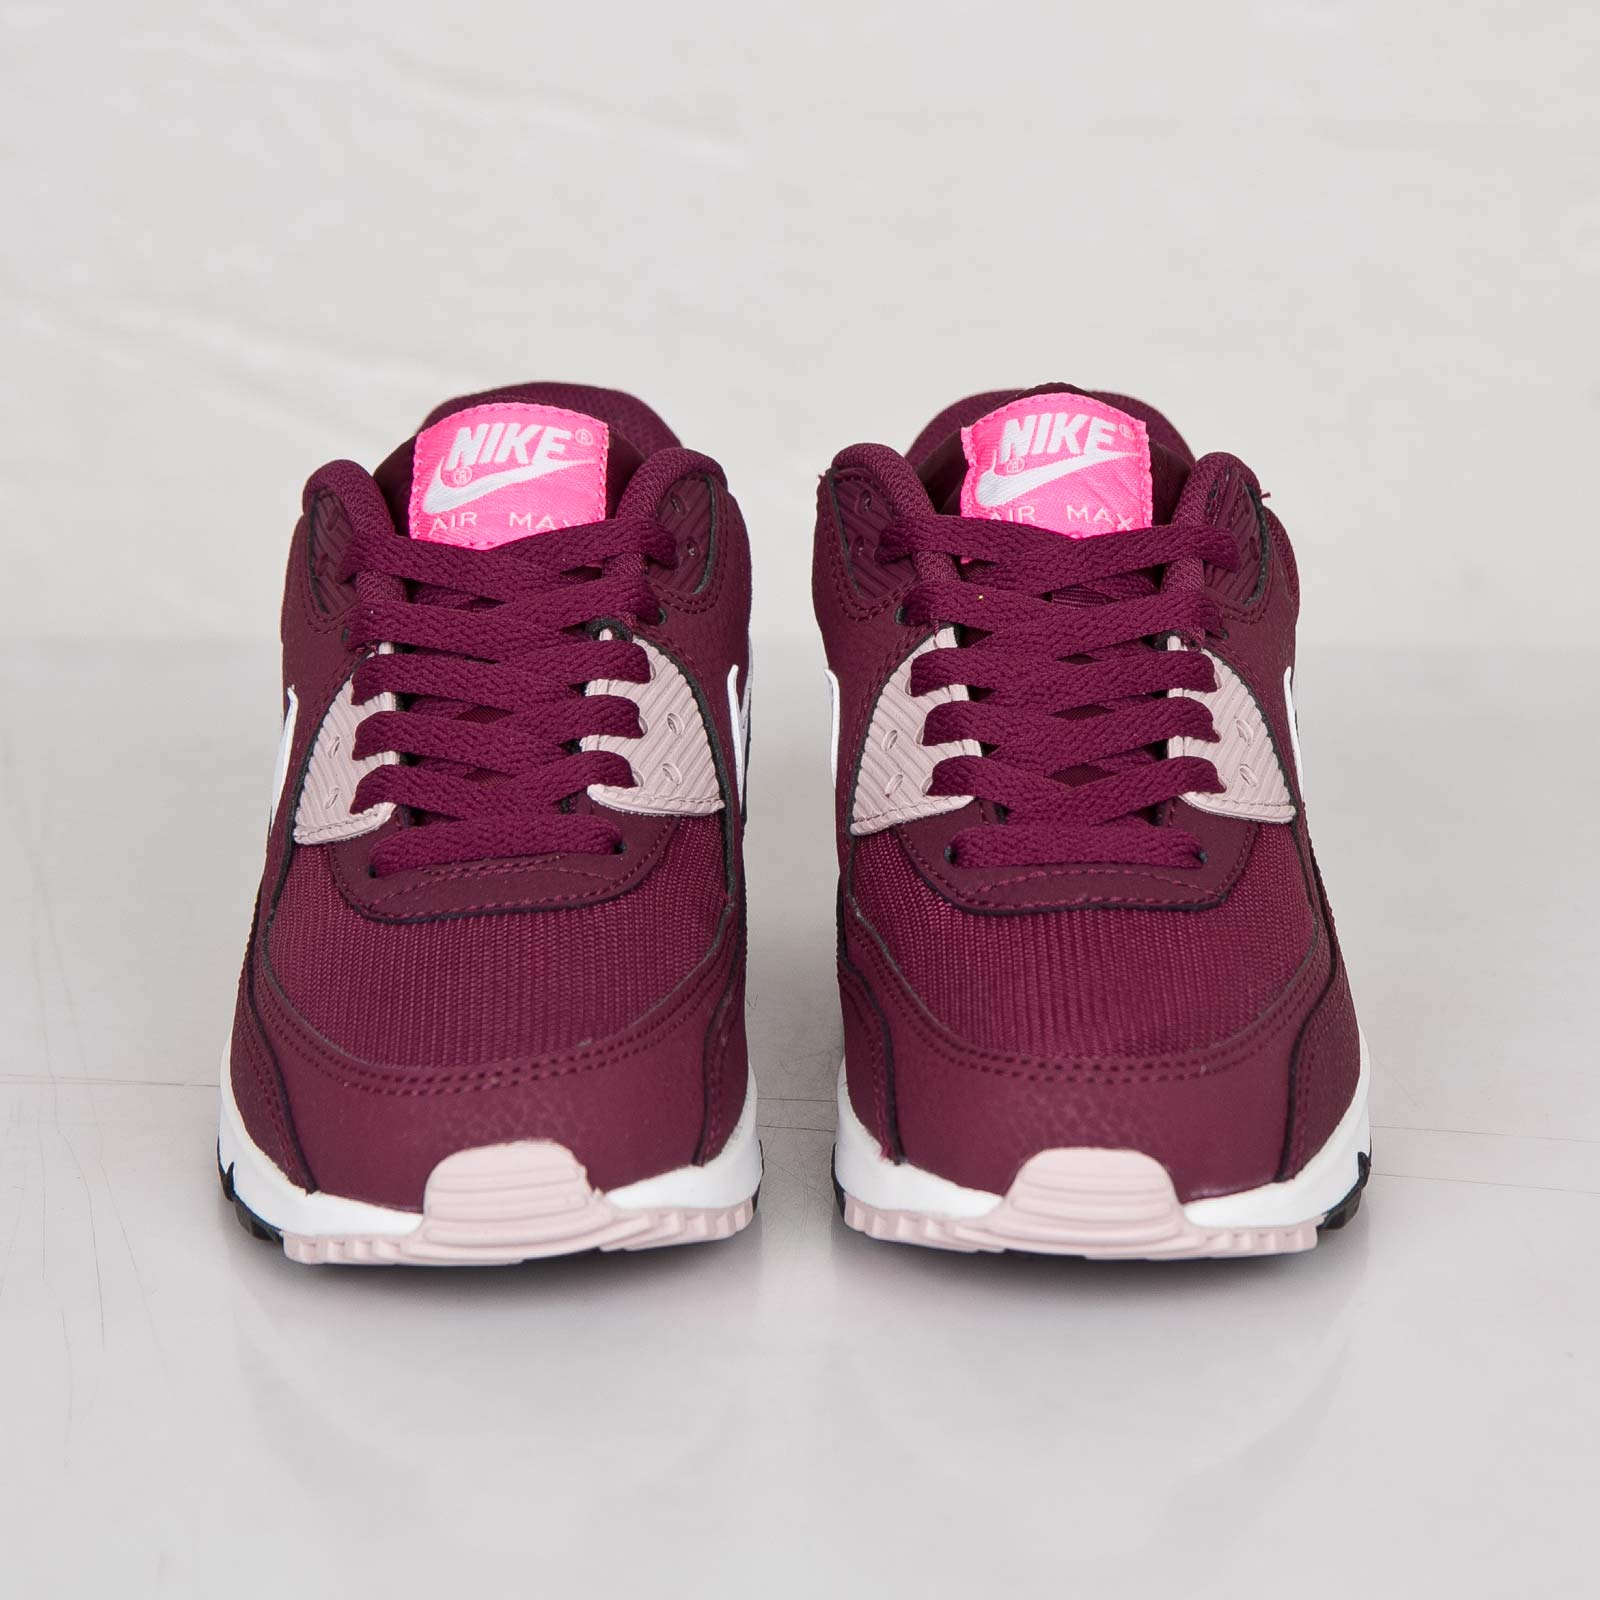 3a178e87b202e Nike Wmns Air Max 90 Essential - 616730-600 - Sneakersnstuff | sneakers &  streetwear online since 1999